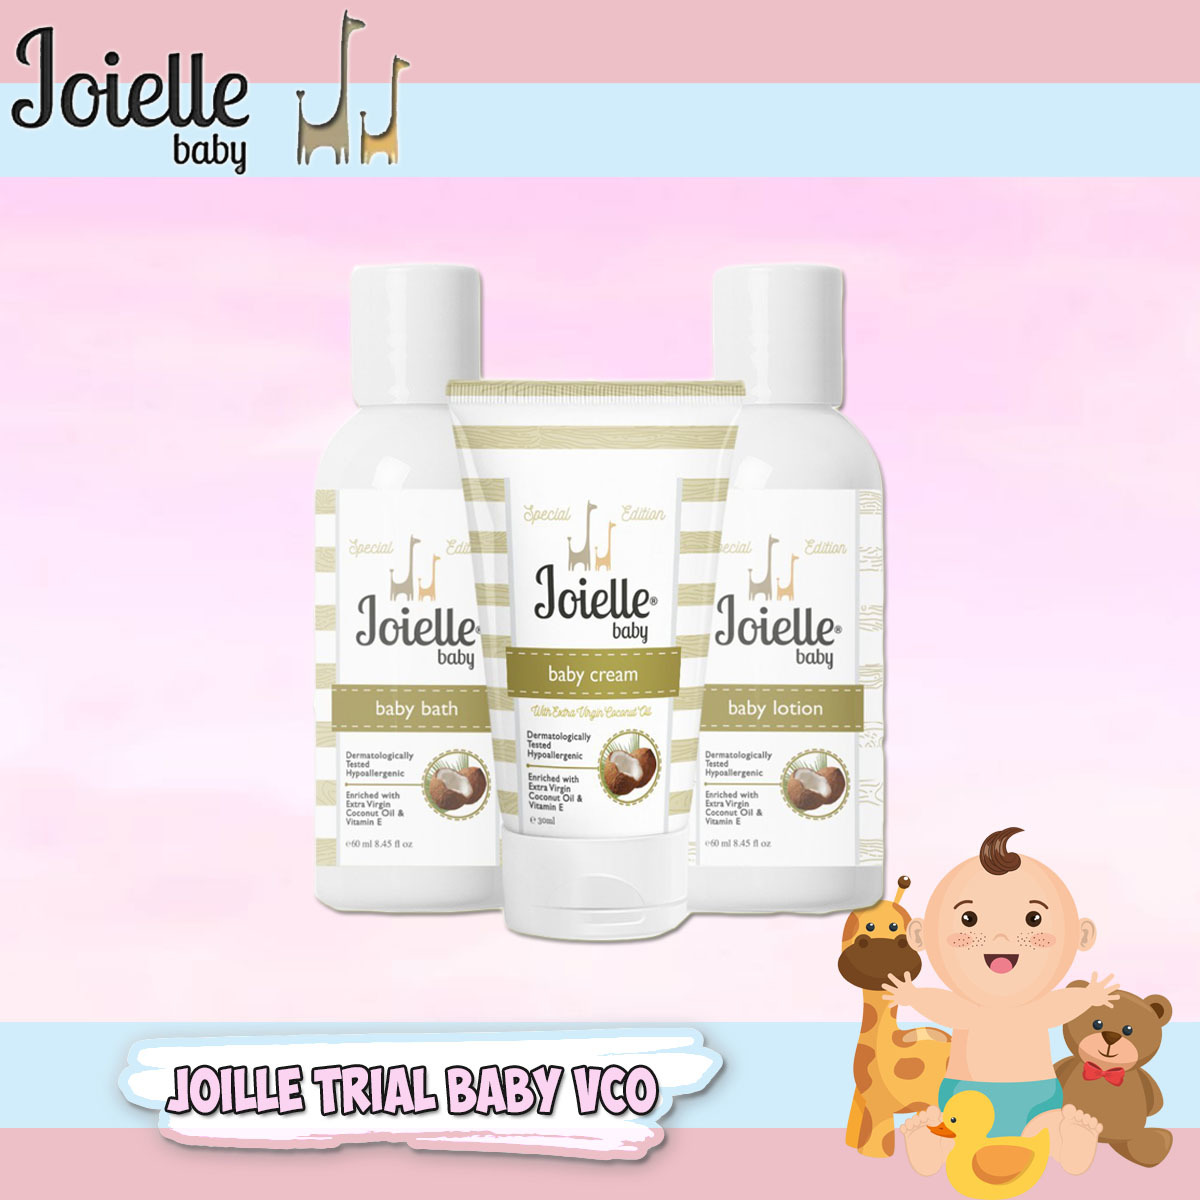 Joille Trial Baby VCO.jpg